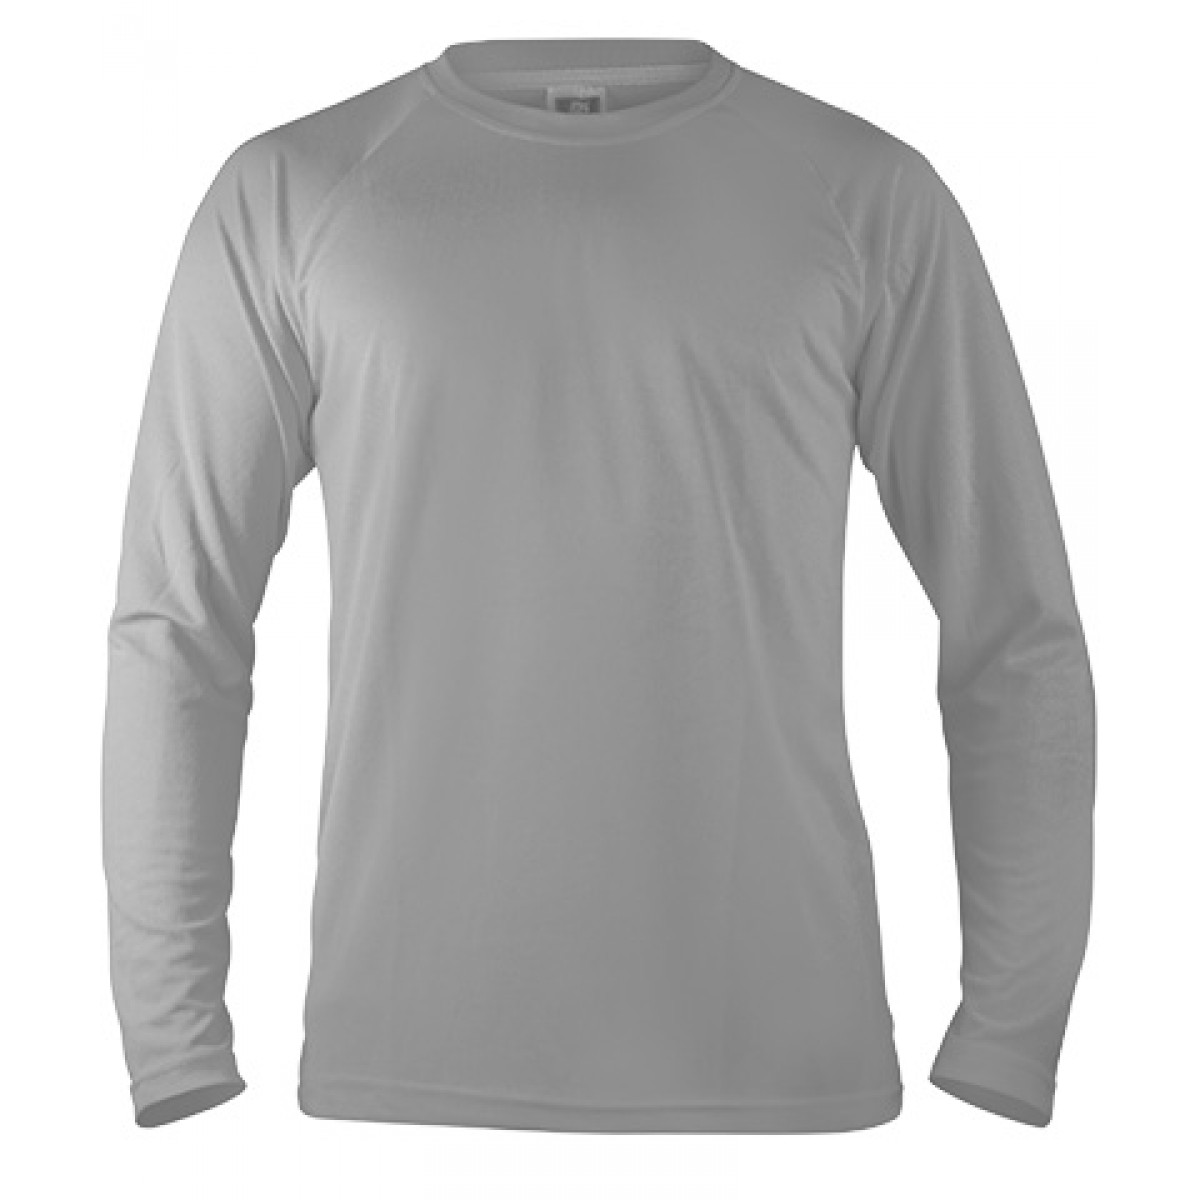 Long Sleeve Performance -Gray -2XL